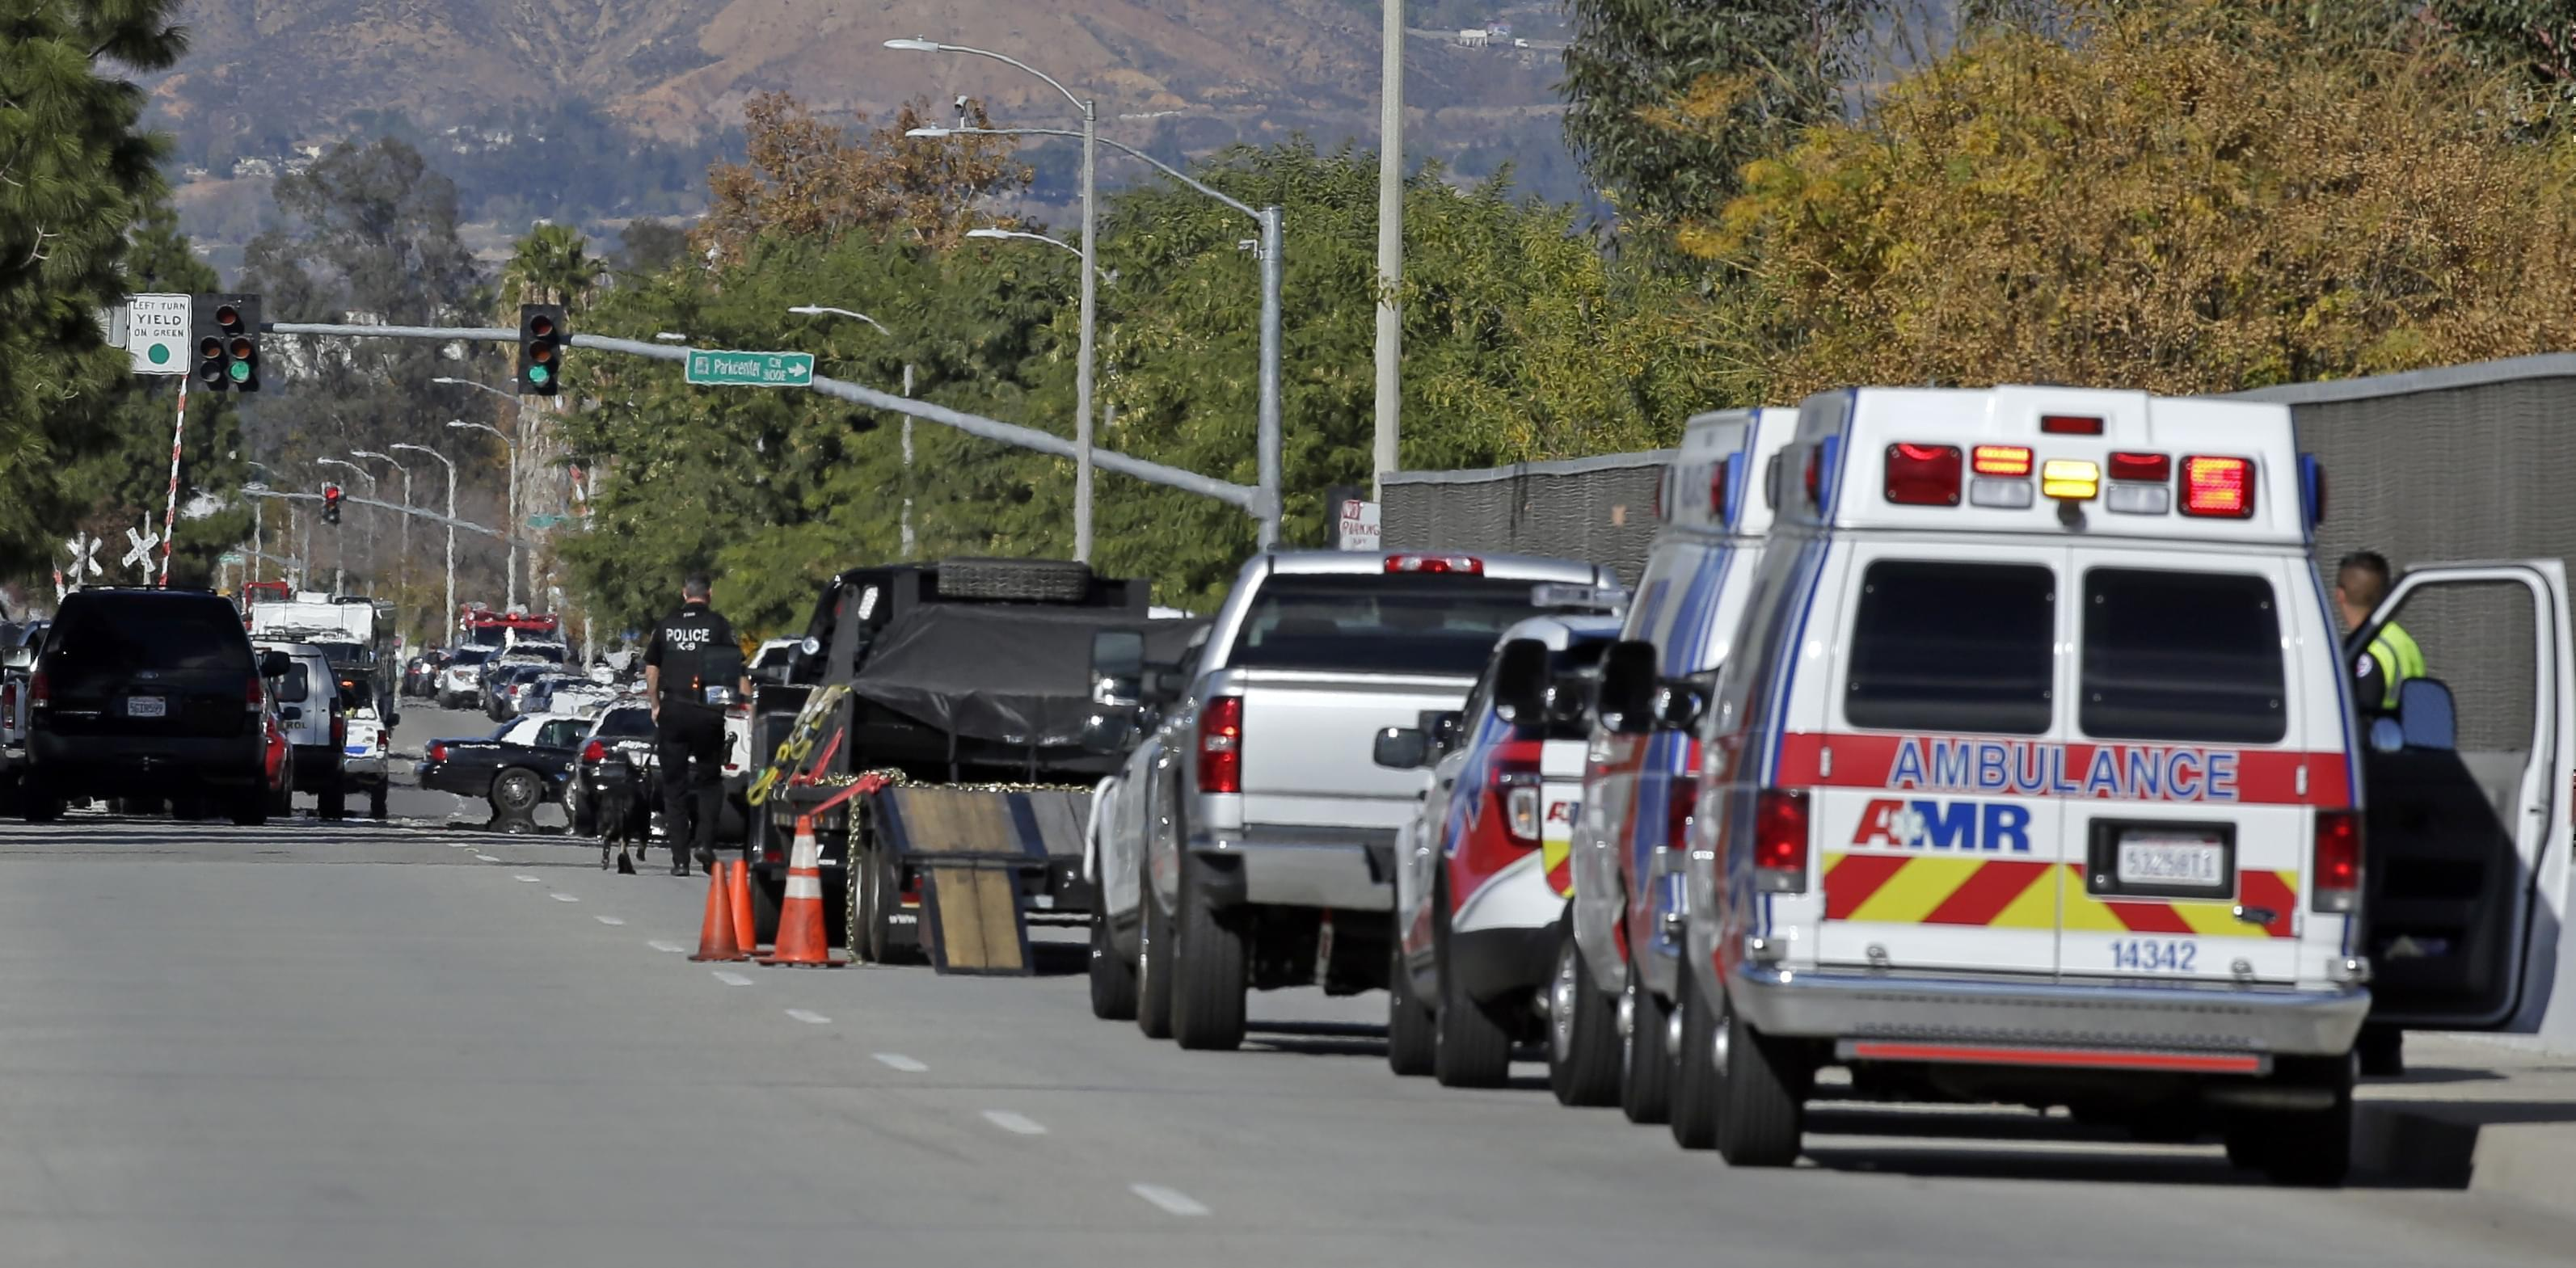 Law enforcement members line up near the the site of a mass shooting on Wednesday, Dec. 2, 2015 in San Bernardino, Calif. One or more gunmen opened fire Wednesday at a Southern California social services center, shooting several people as others lock